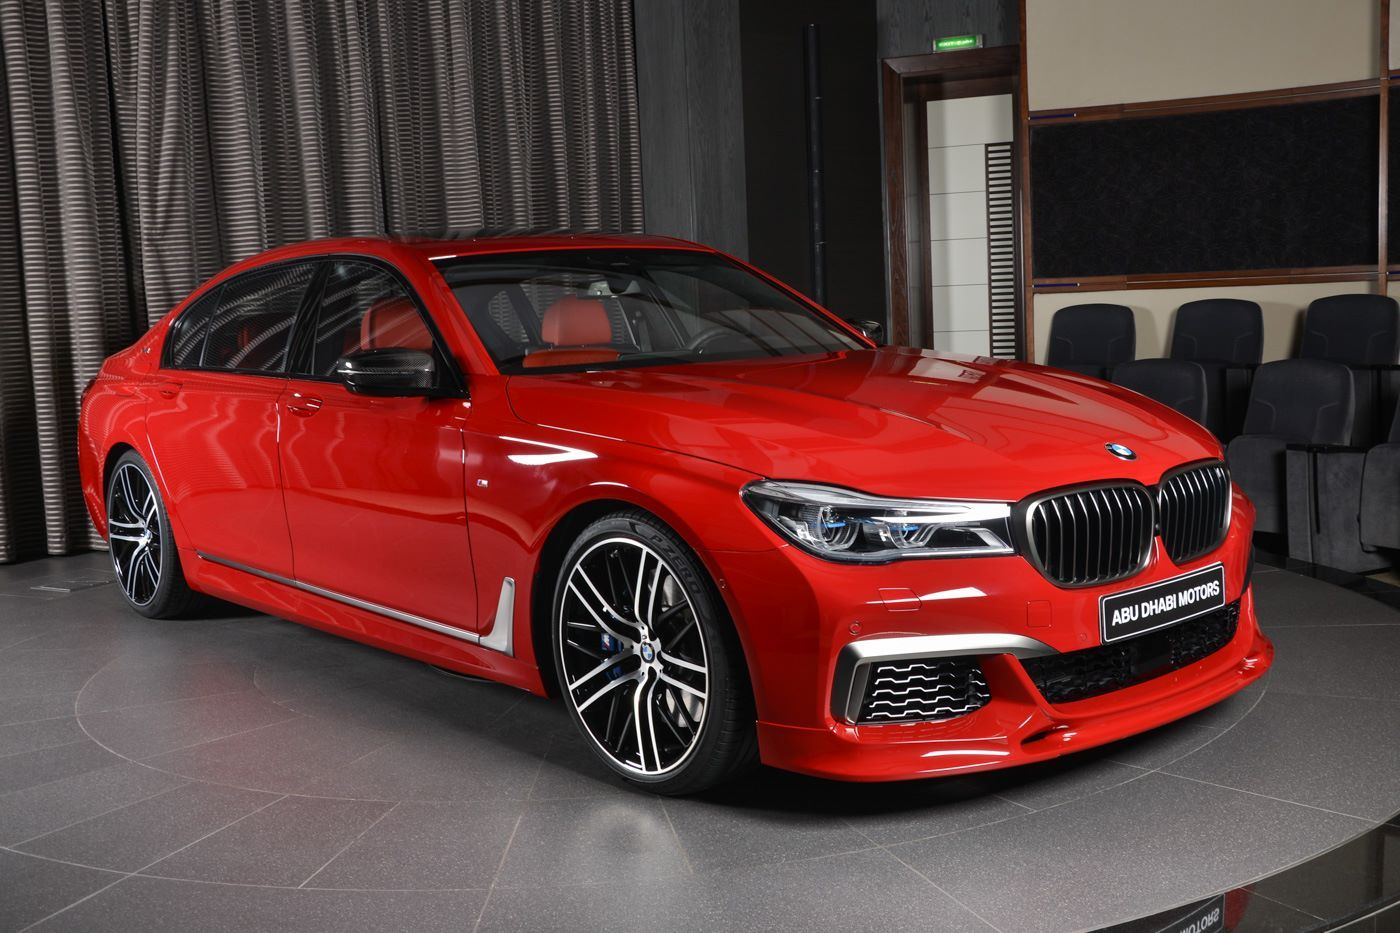 Imola Red BMW M760Li Could Brighten Up Anyone's Day | Carscoops